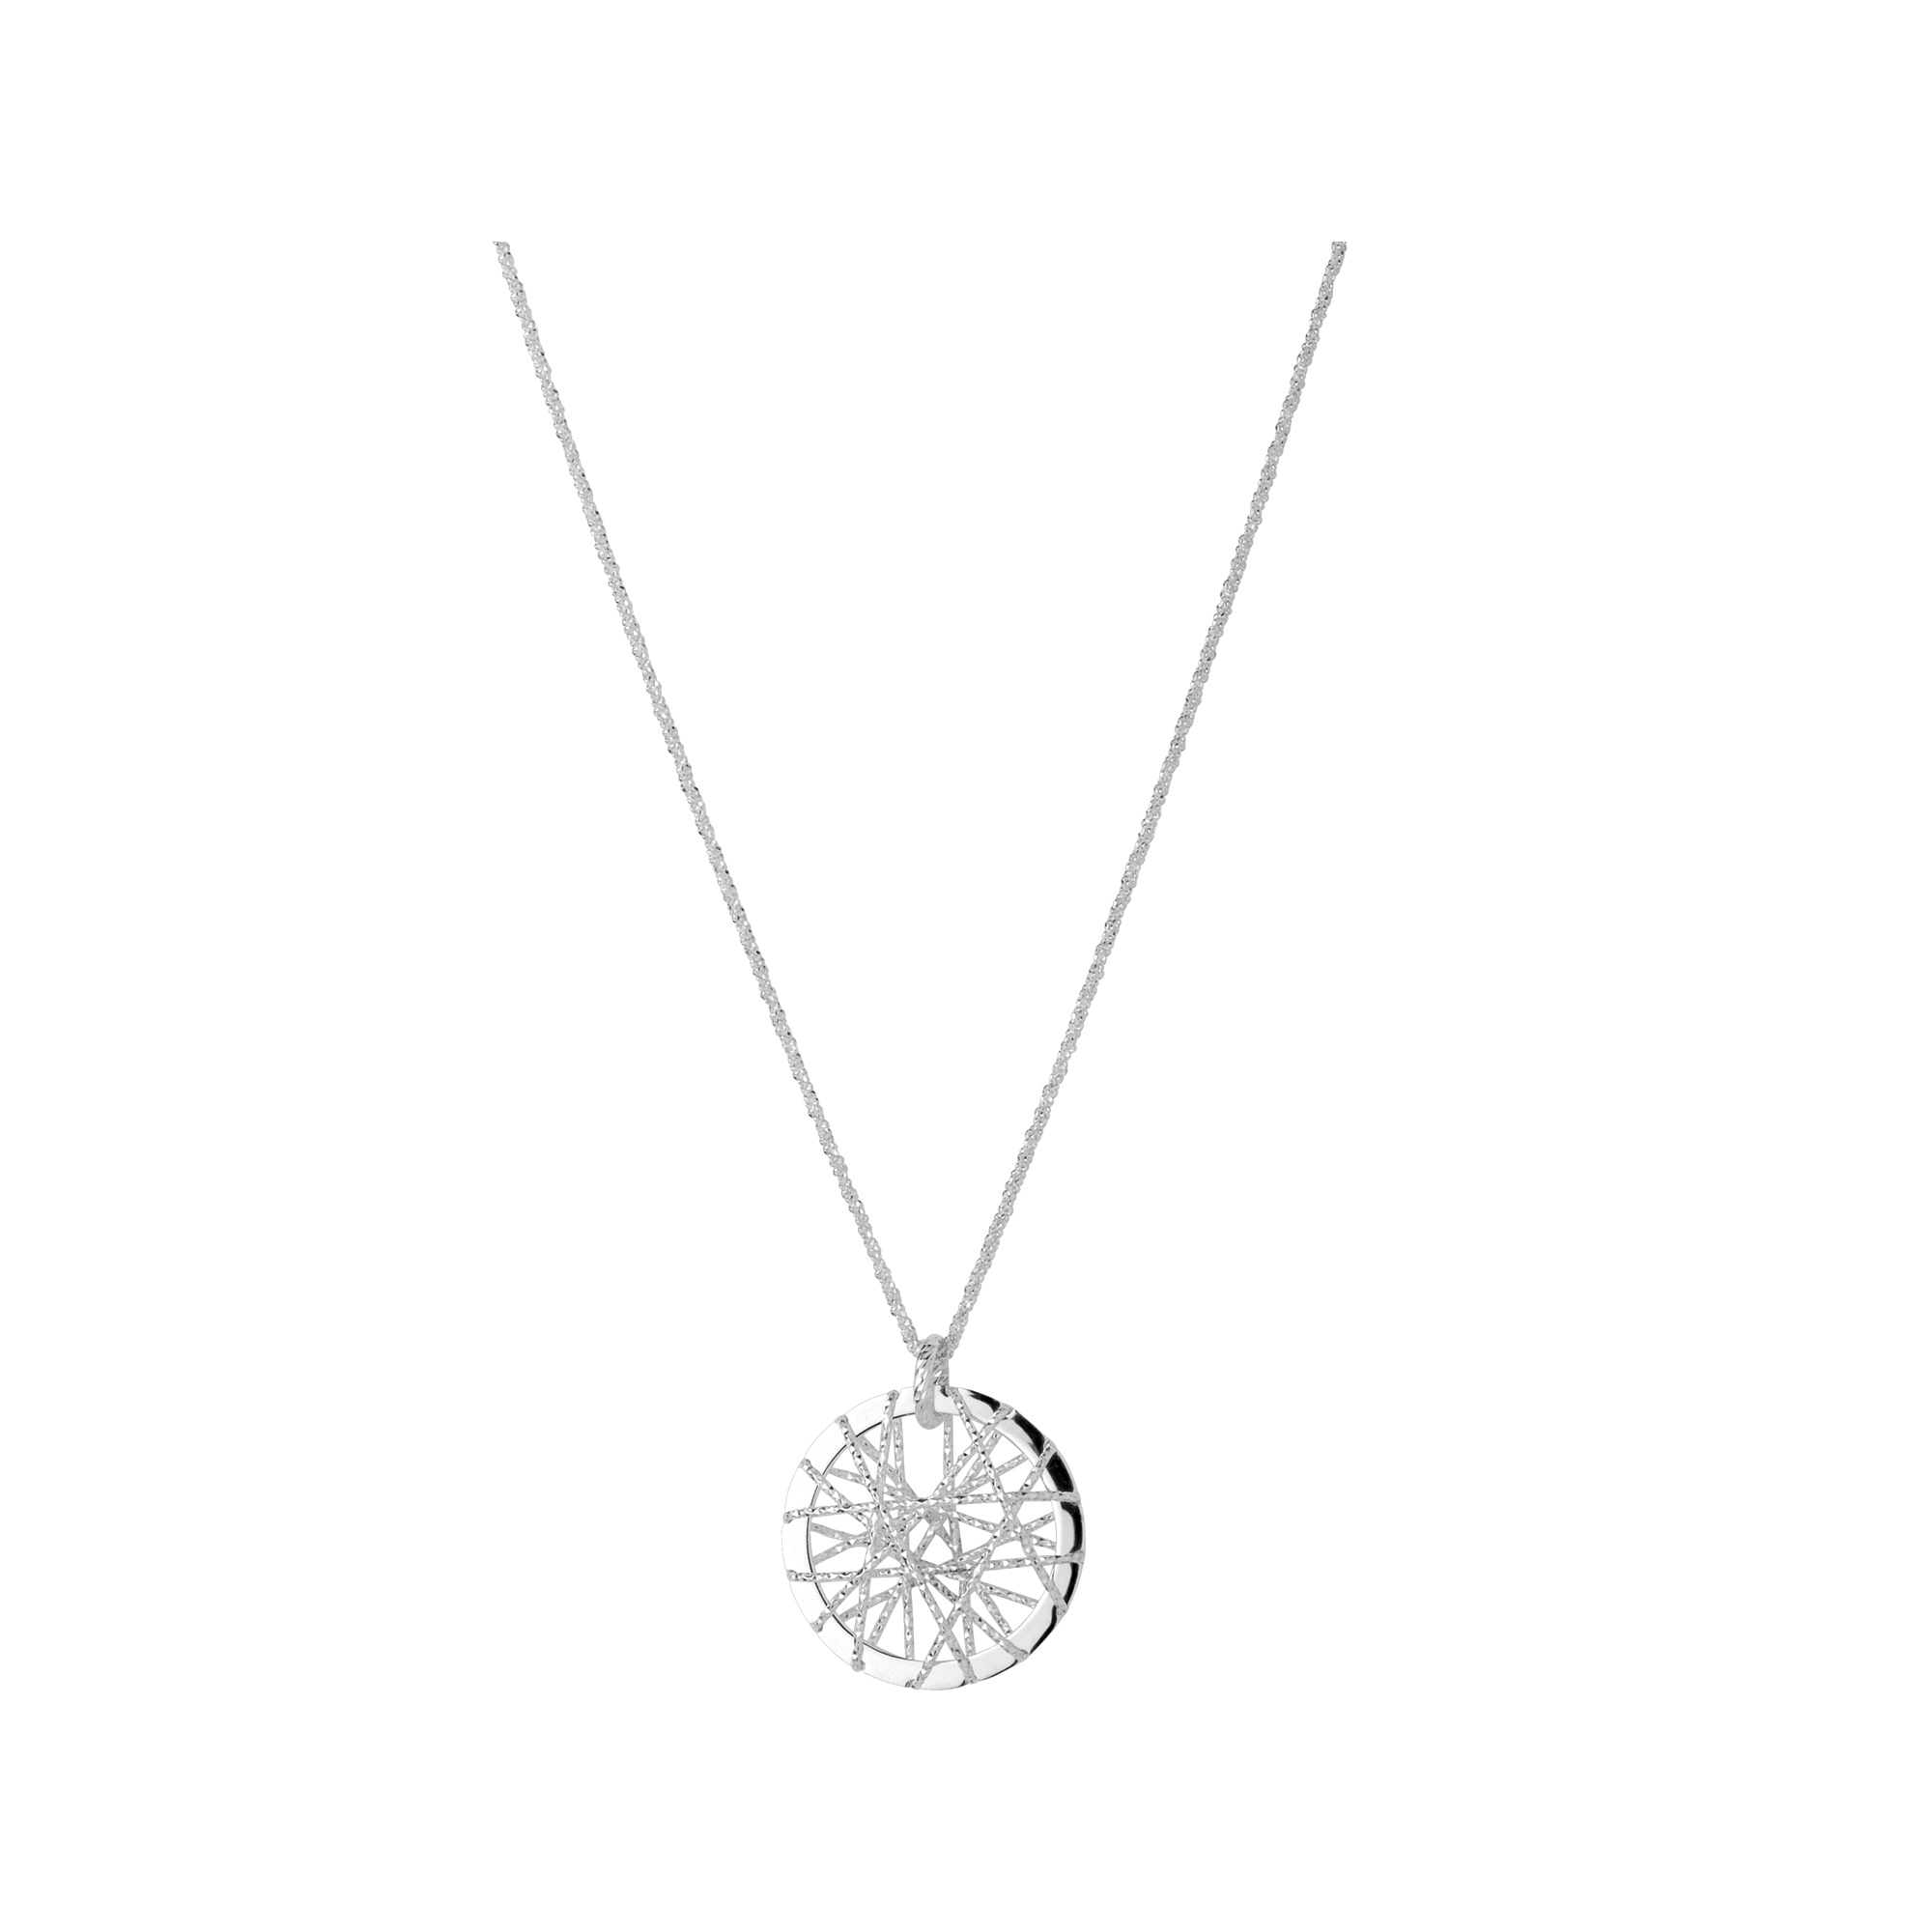 Links of London Dream Catcher Sterling Silver Necklace - 21st gift